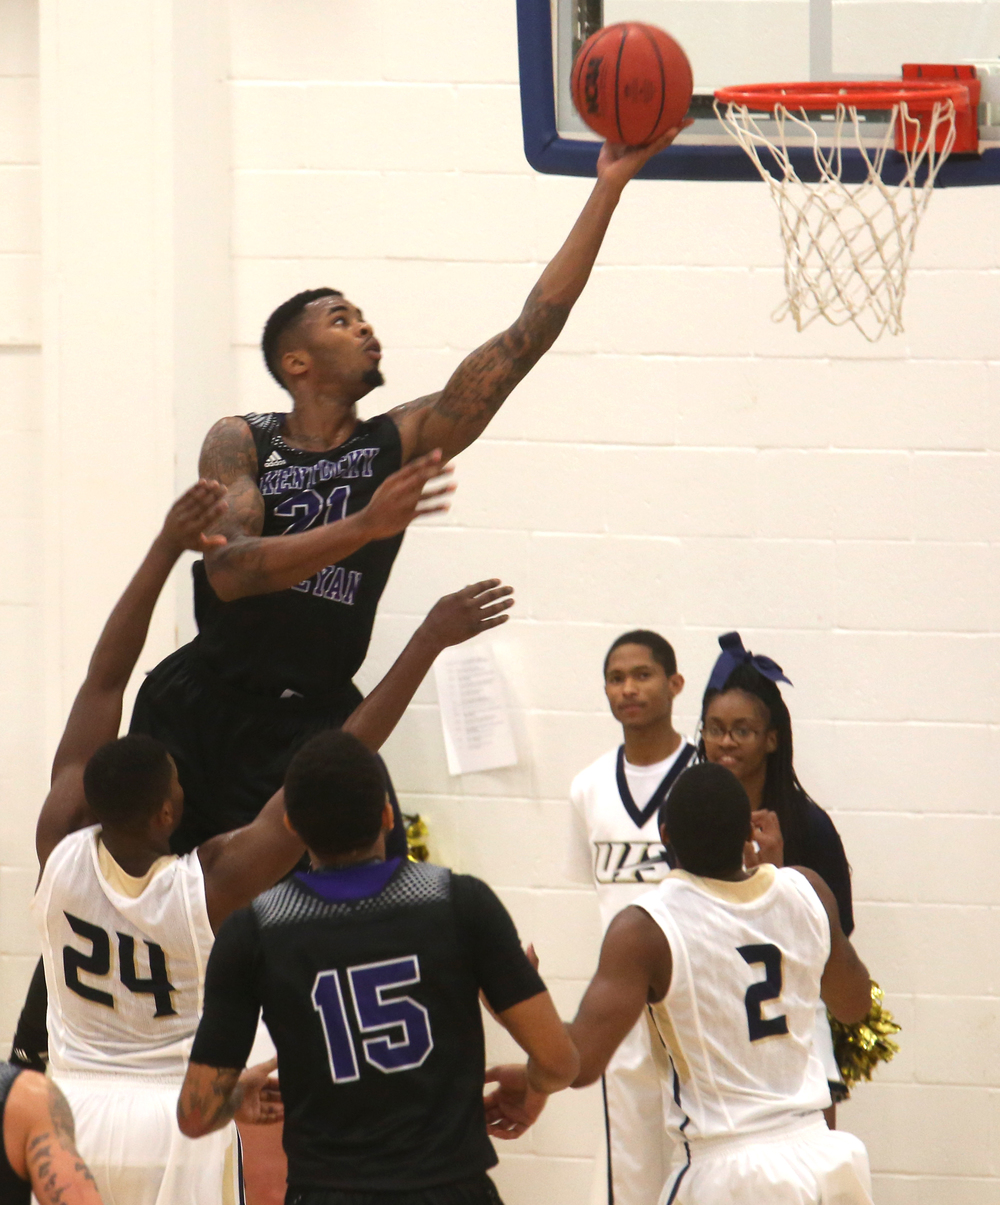 Panthers player Devin Langford puts up two points. The Kentucky Wesleyan Panthers defeated the UIS Prairie Stars 80-61 in men's basketball action at the TRAC center on the UIS campus on Sunday, Dec. 14, 2014. David Spencer/The State Journal-Register